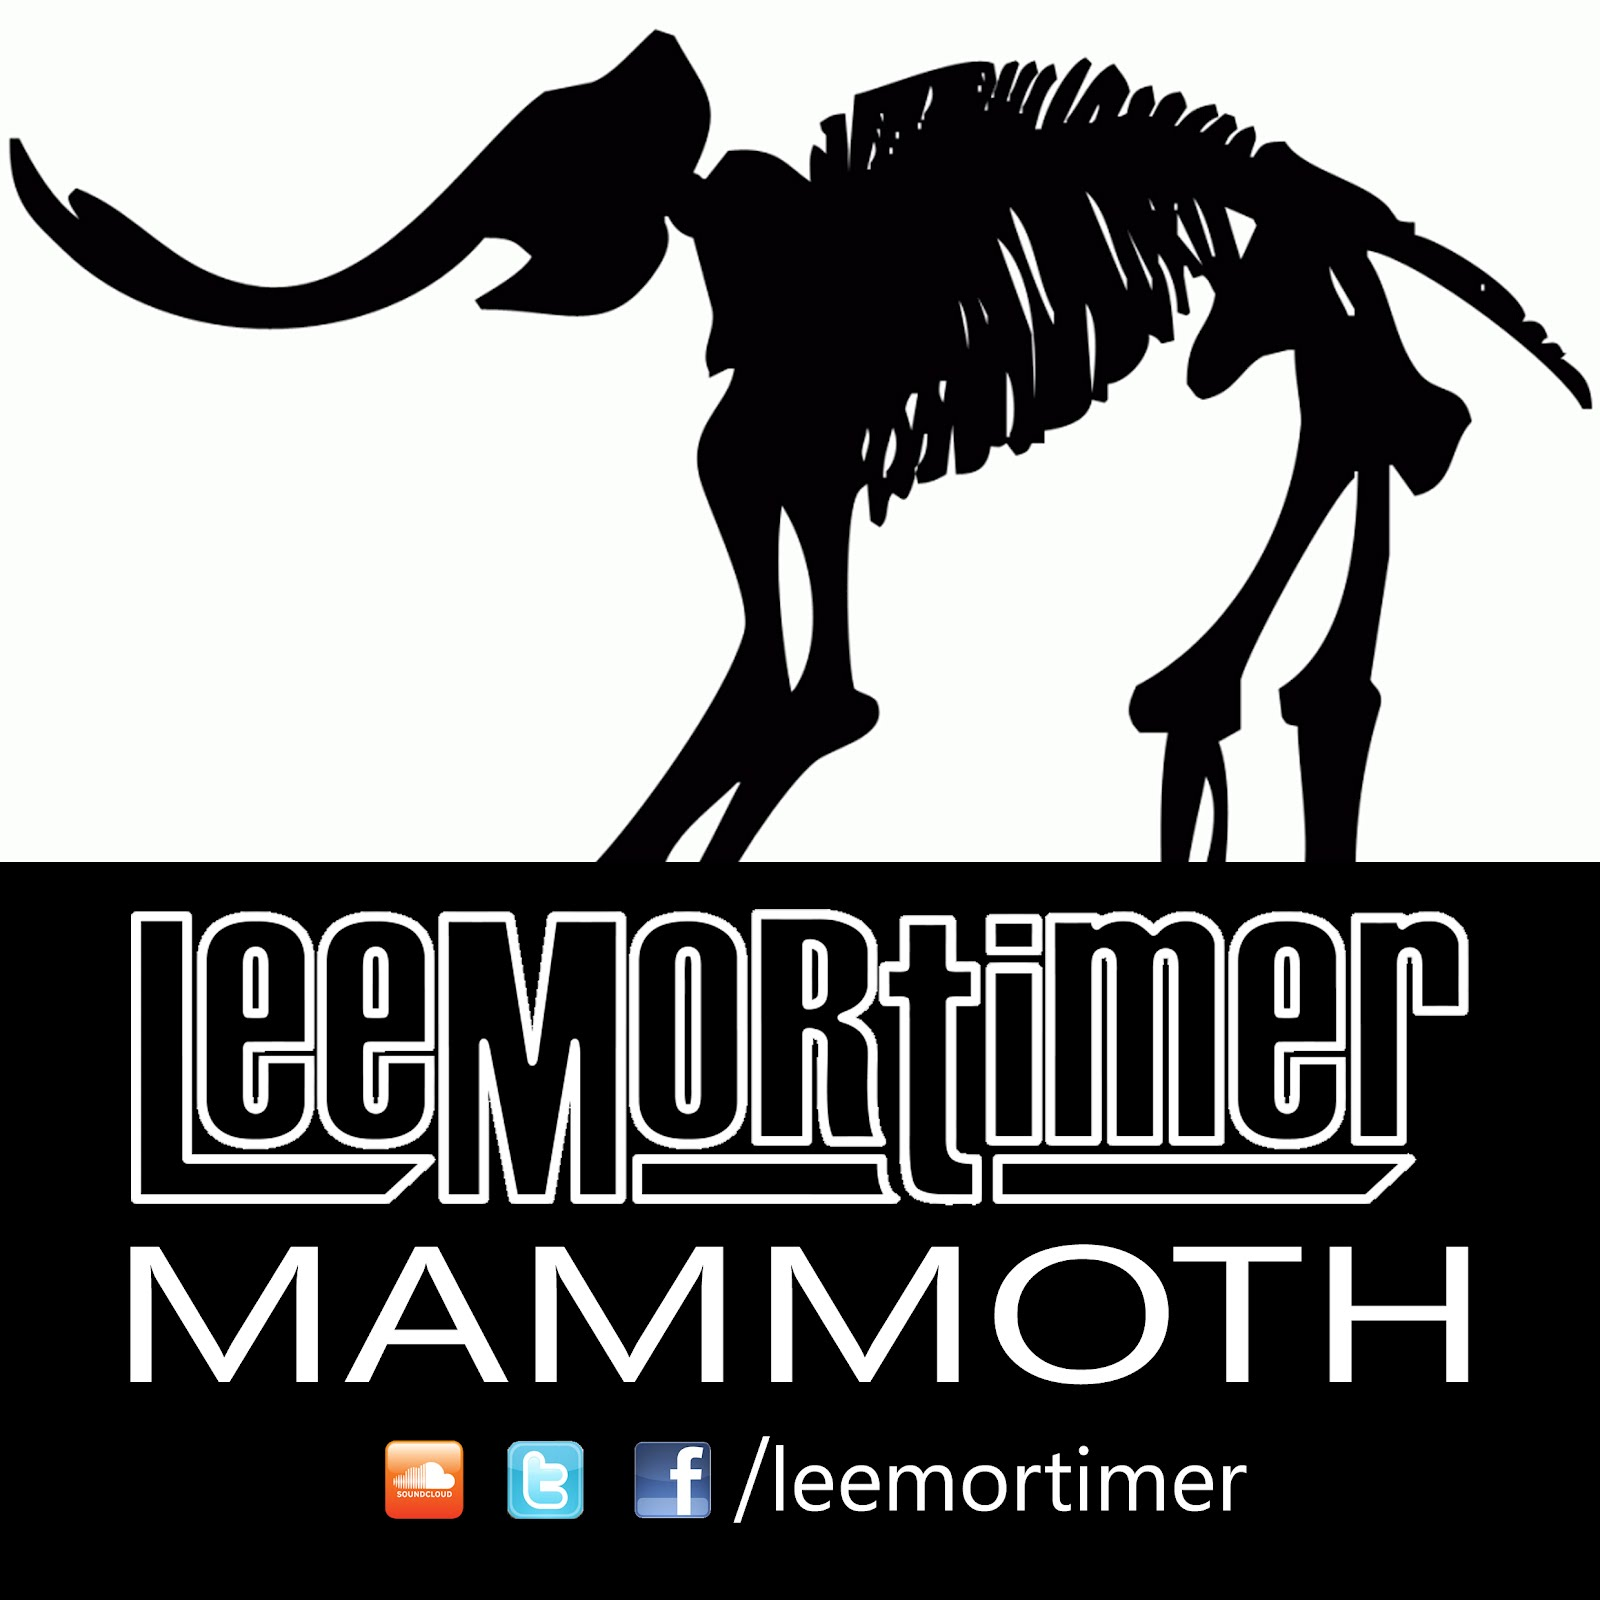 Lee_Mortimer_Mammoth